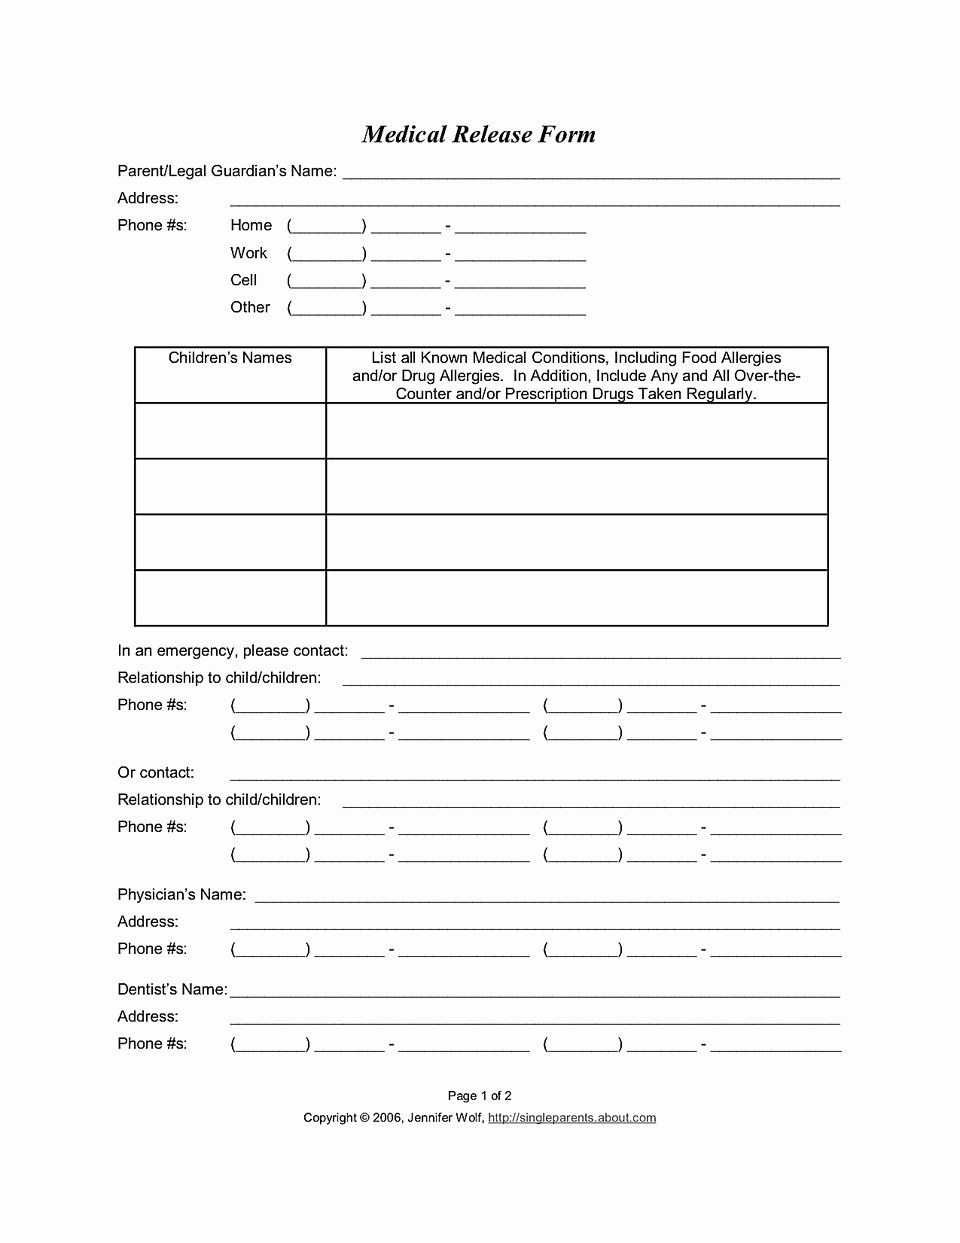 Free Printable Medical forms Awesome Medical Release form for Consent to Treat Your Kids